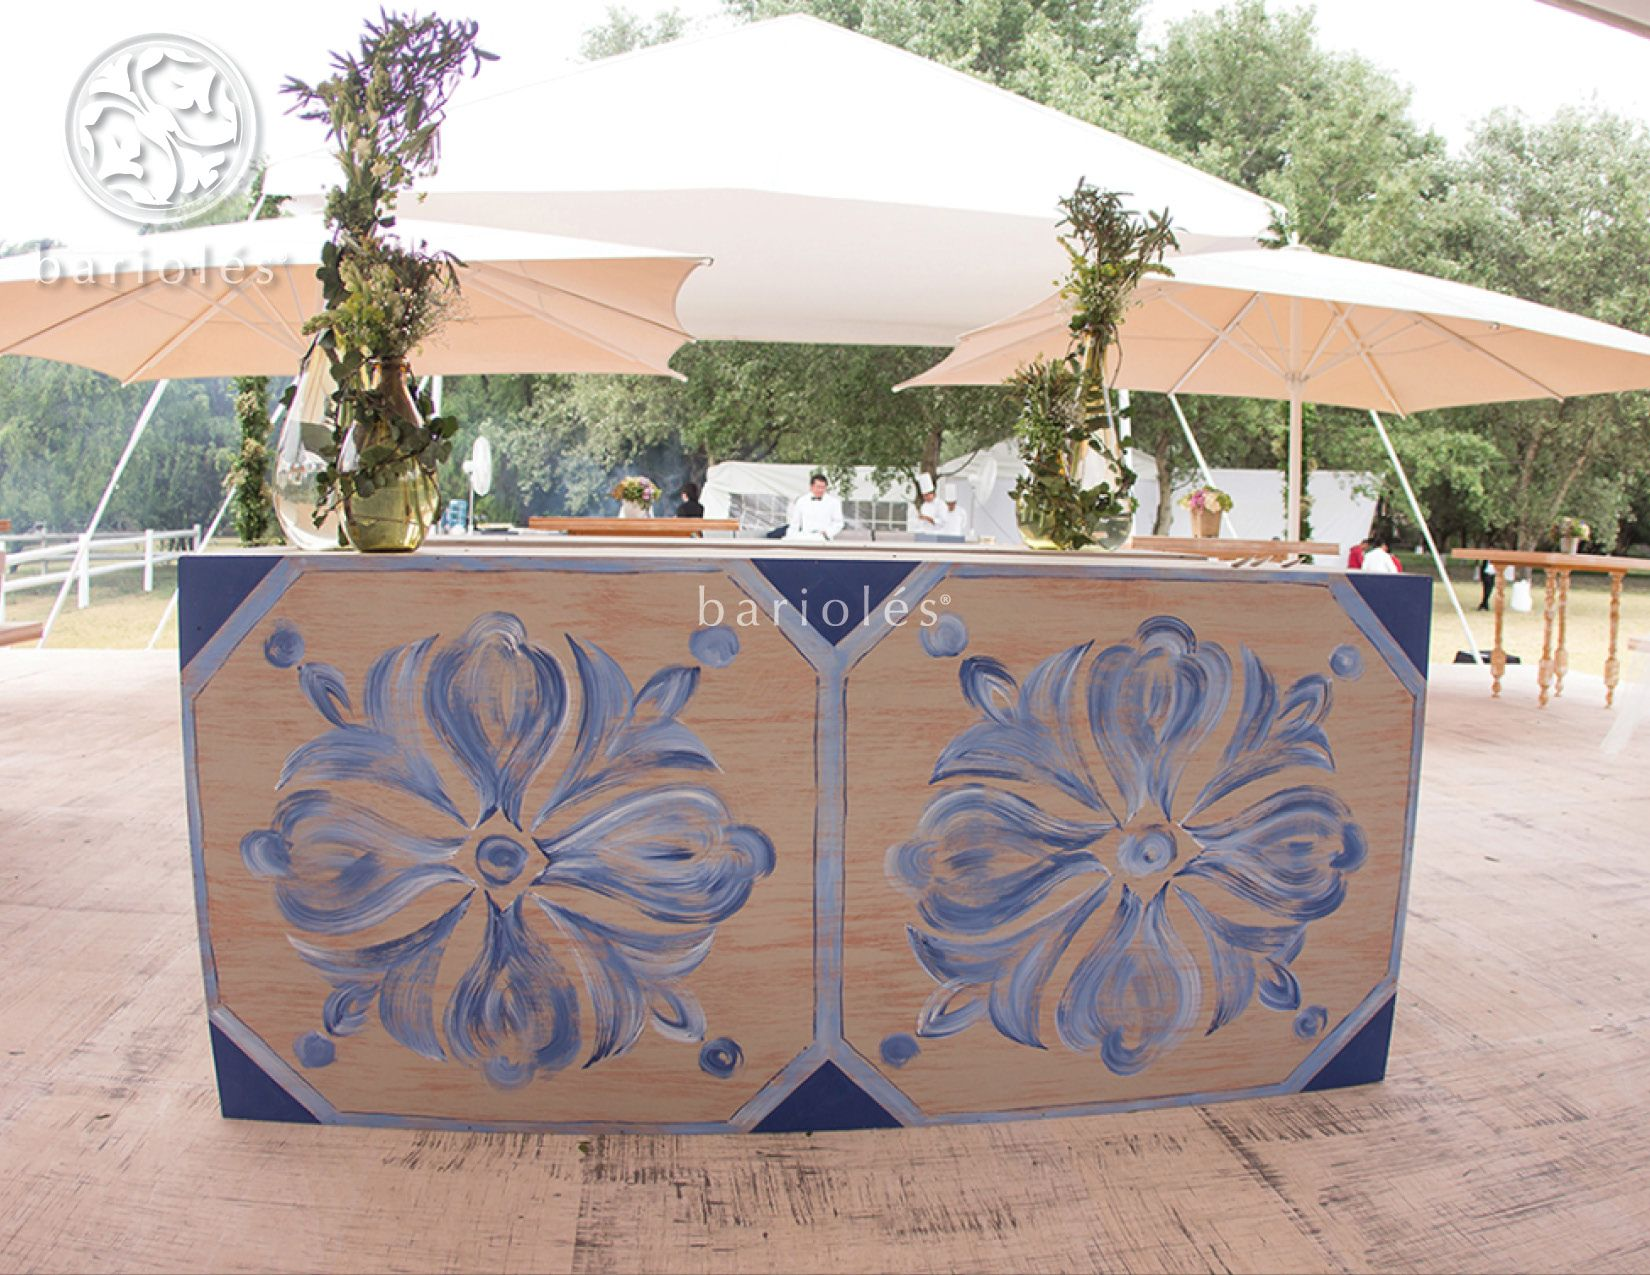 Hand painted wedding bar by #Bariolés #evento #fiesta #boda #tablesetting #DecoracionBodas #WeddingIdeas #WeddingTrends #flores #azul #blue #barra